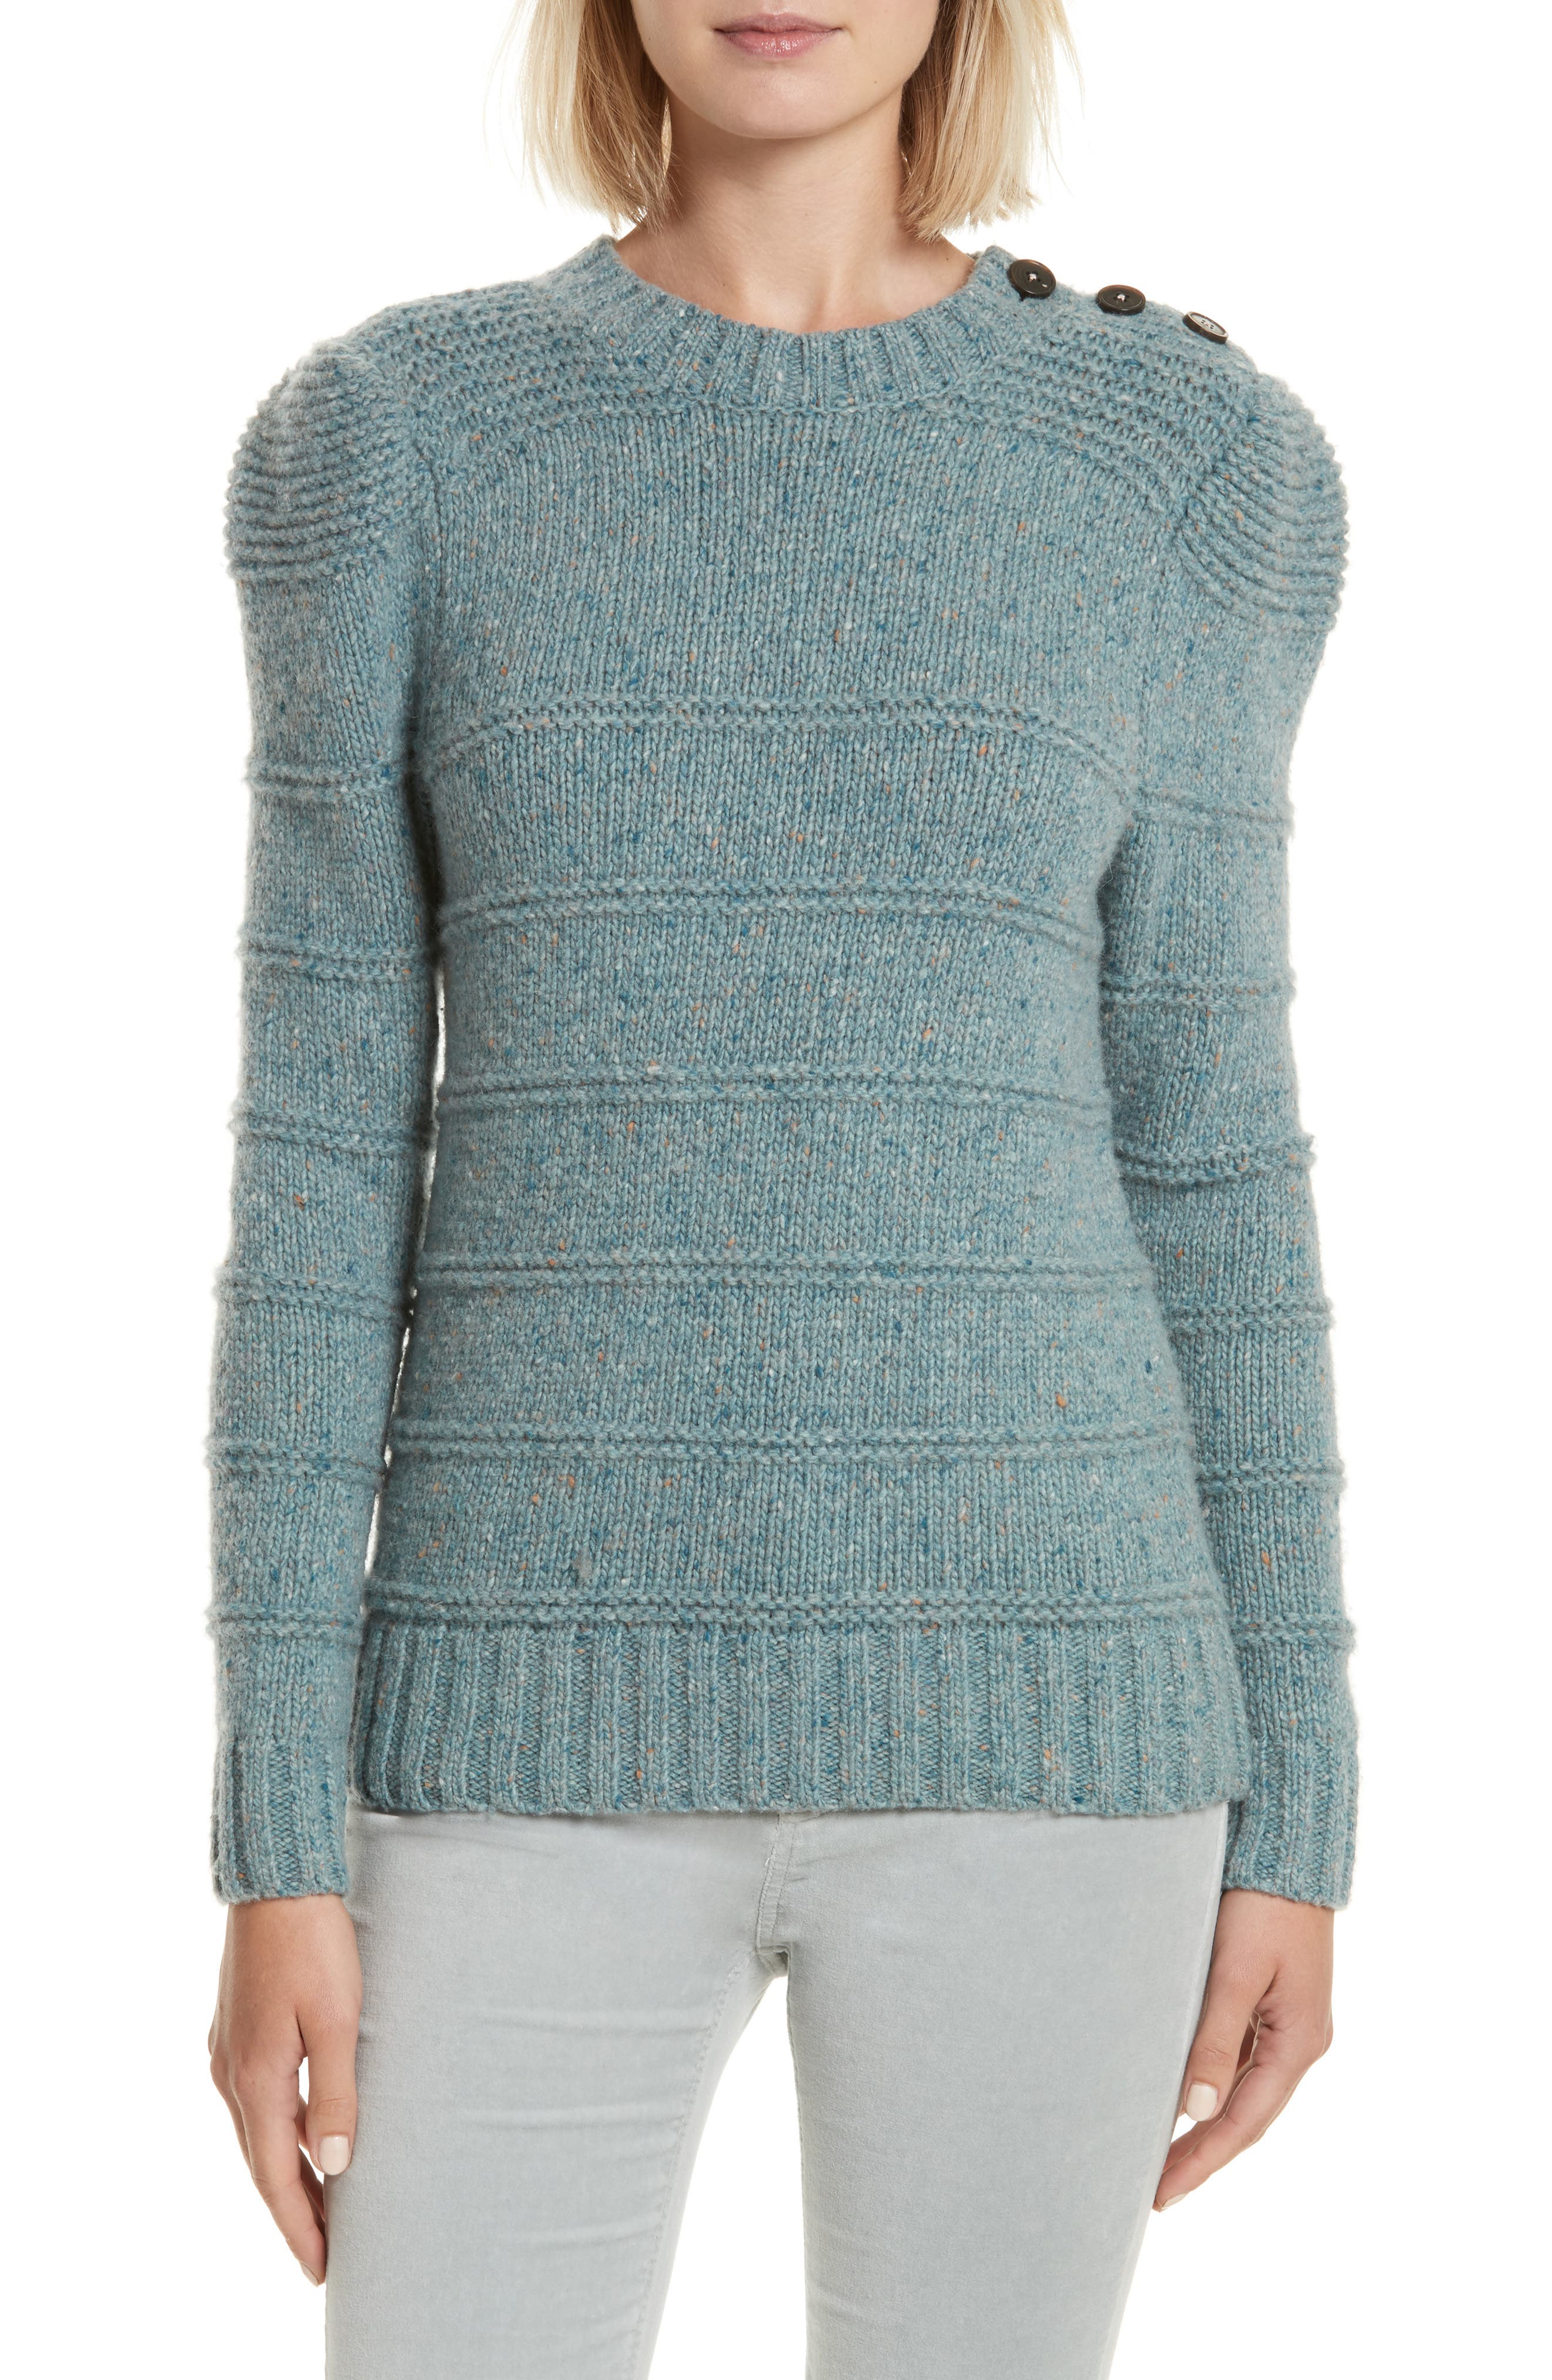 Donegal Tweed Pullover,                             Main thumbnail 1, color,